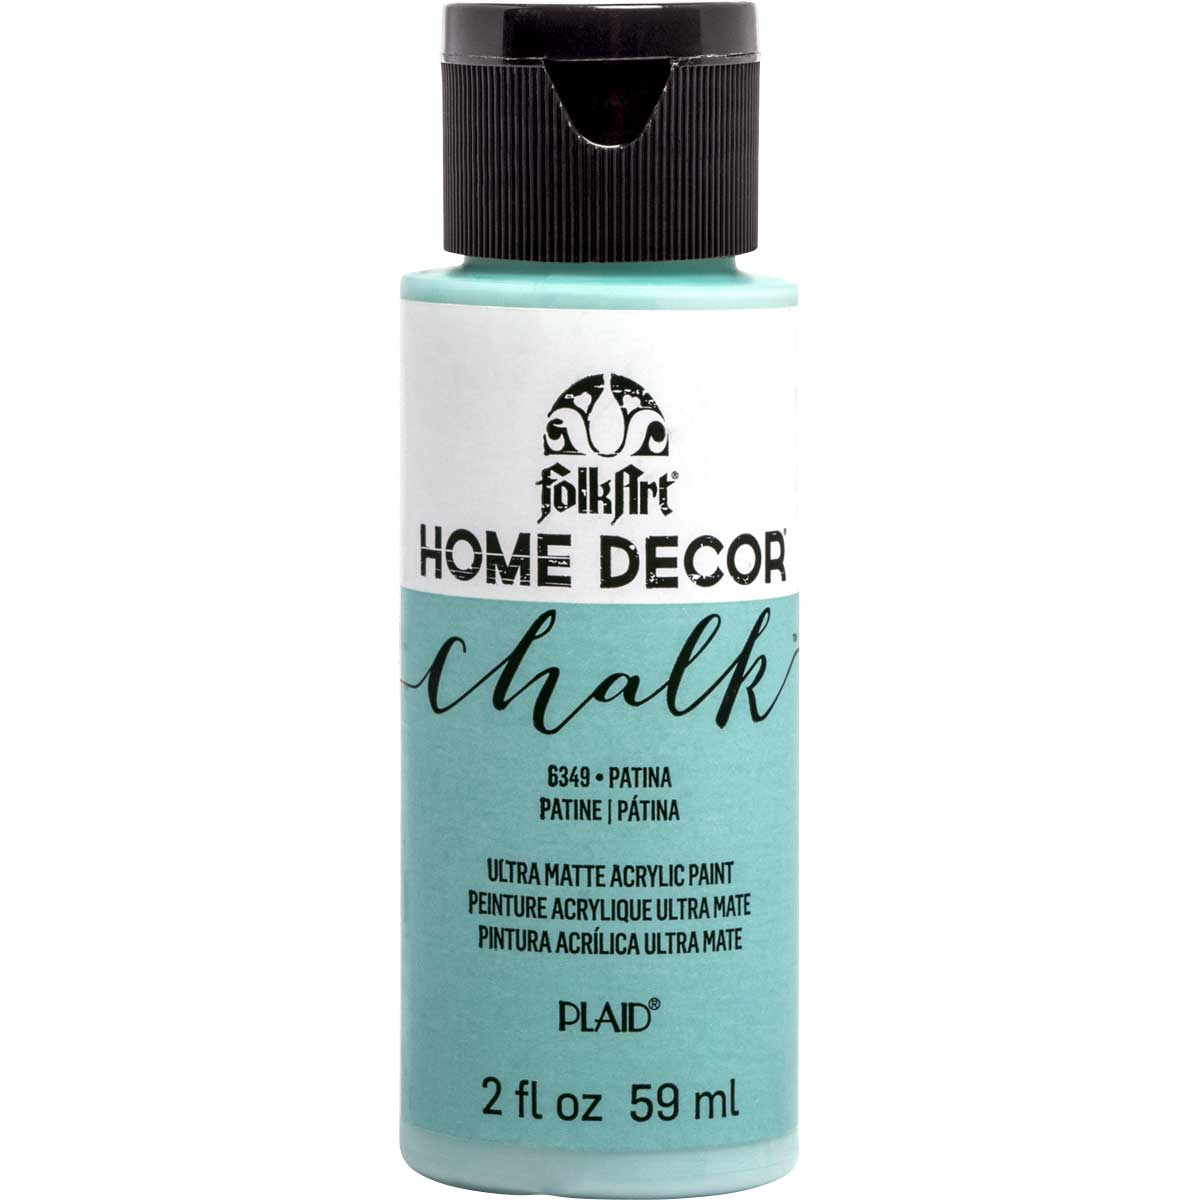 FolkArt ® Home Decor™ Chalk - Patina, 2 oz.